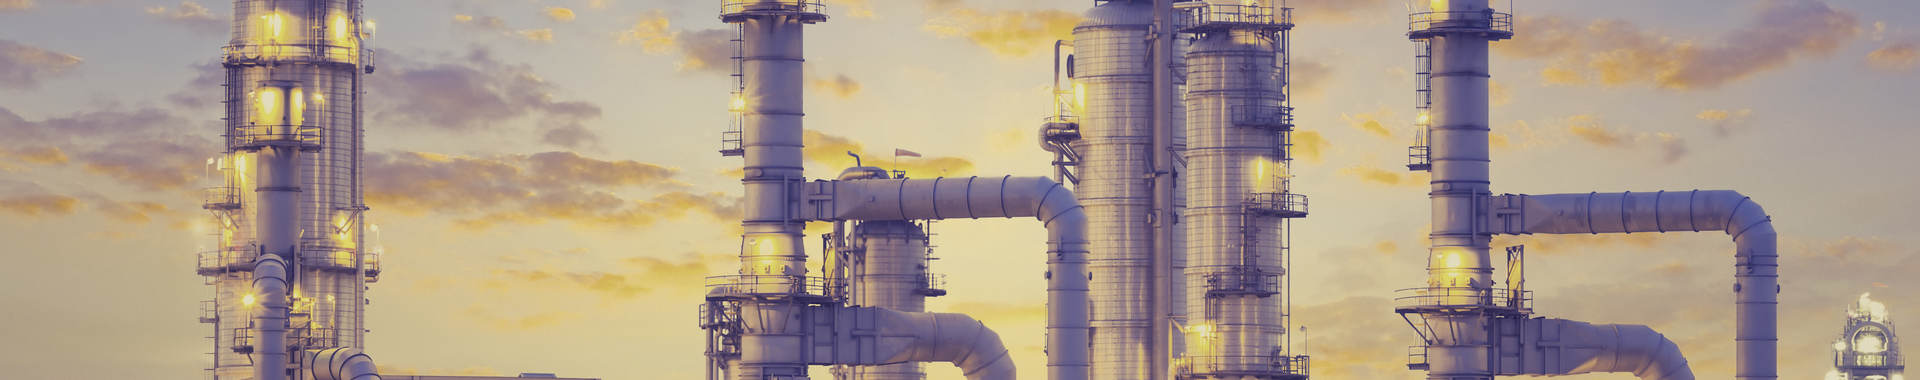 Picture of an oil refinery at dusk